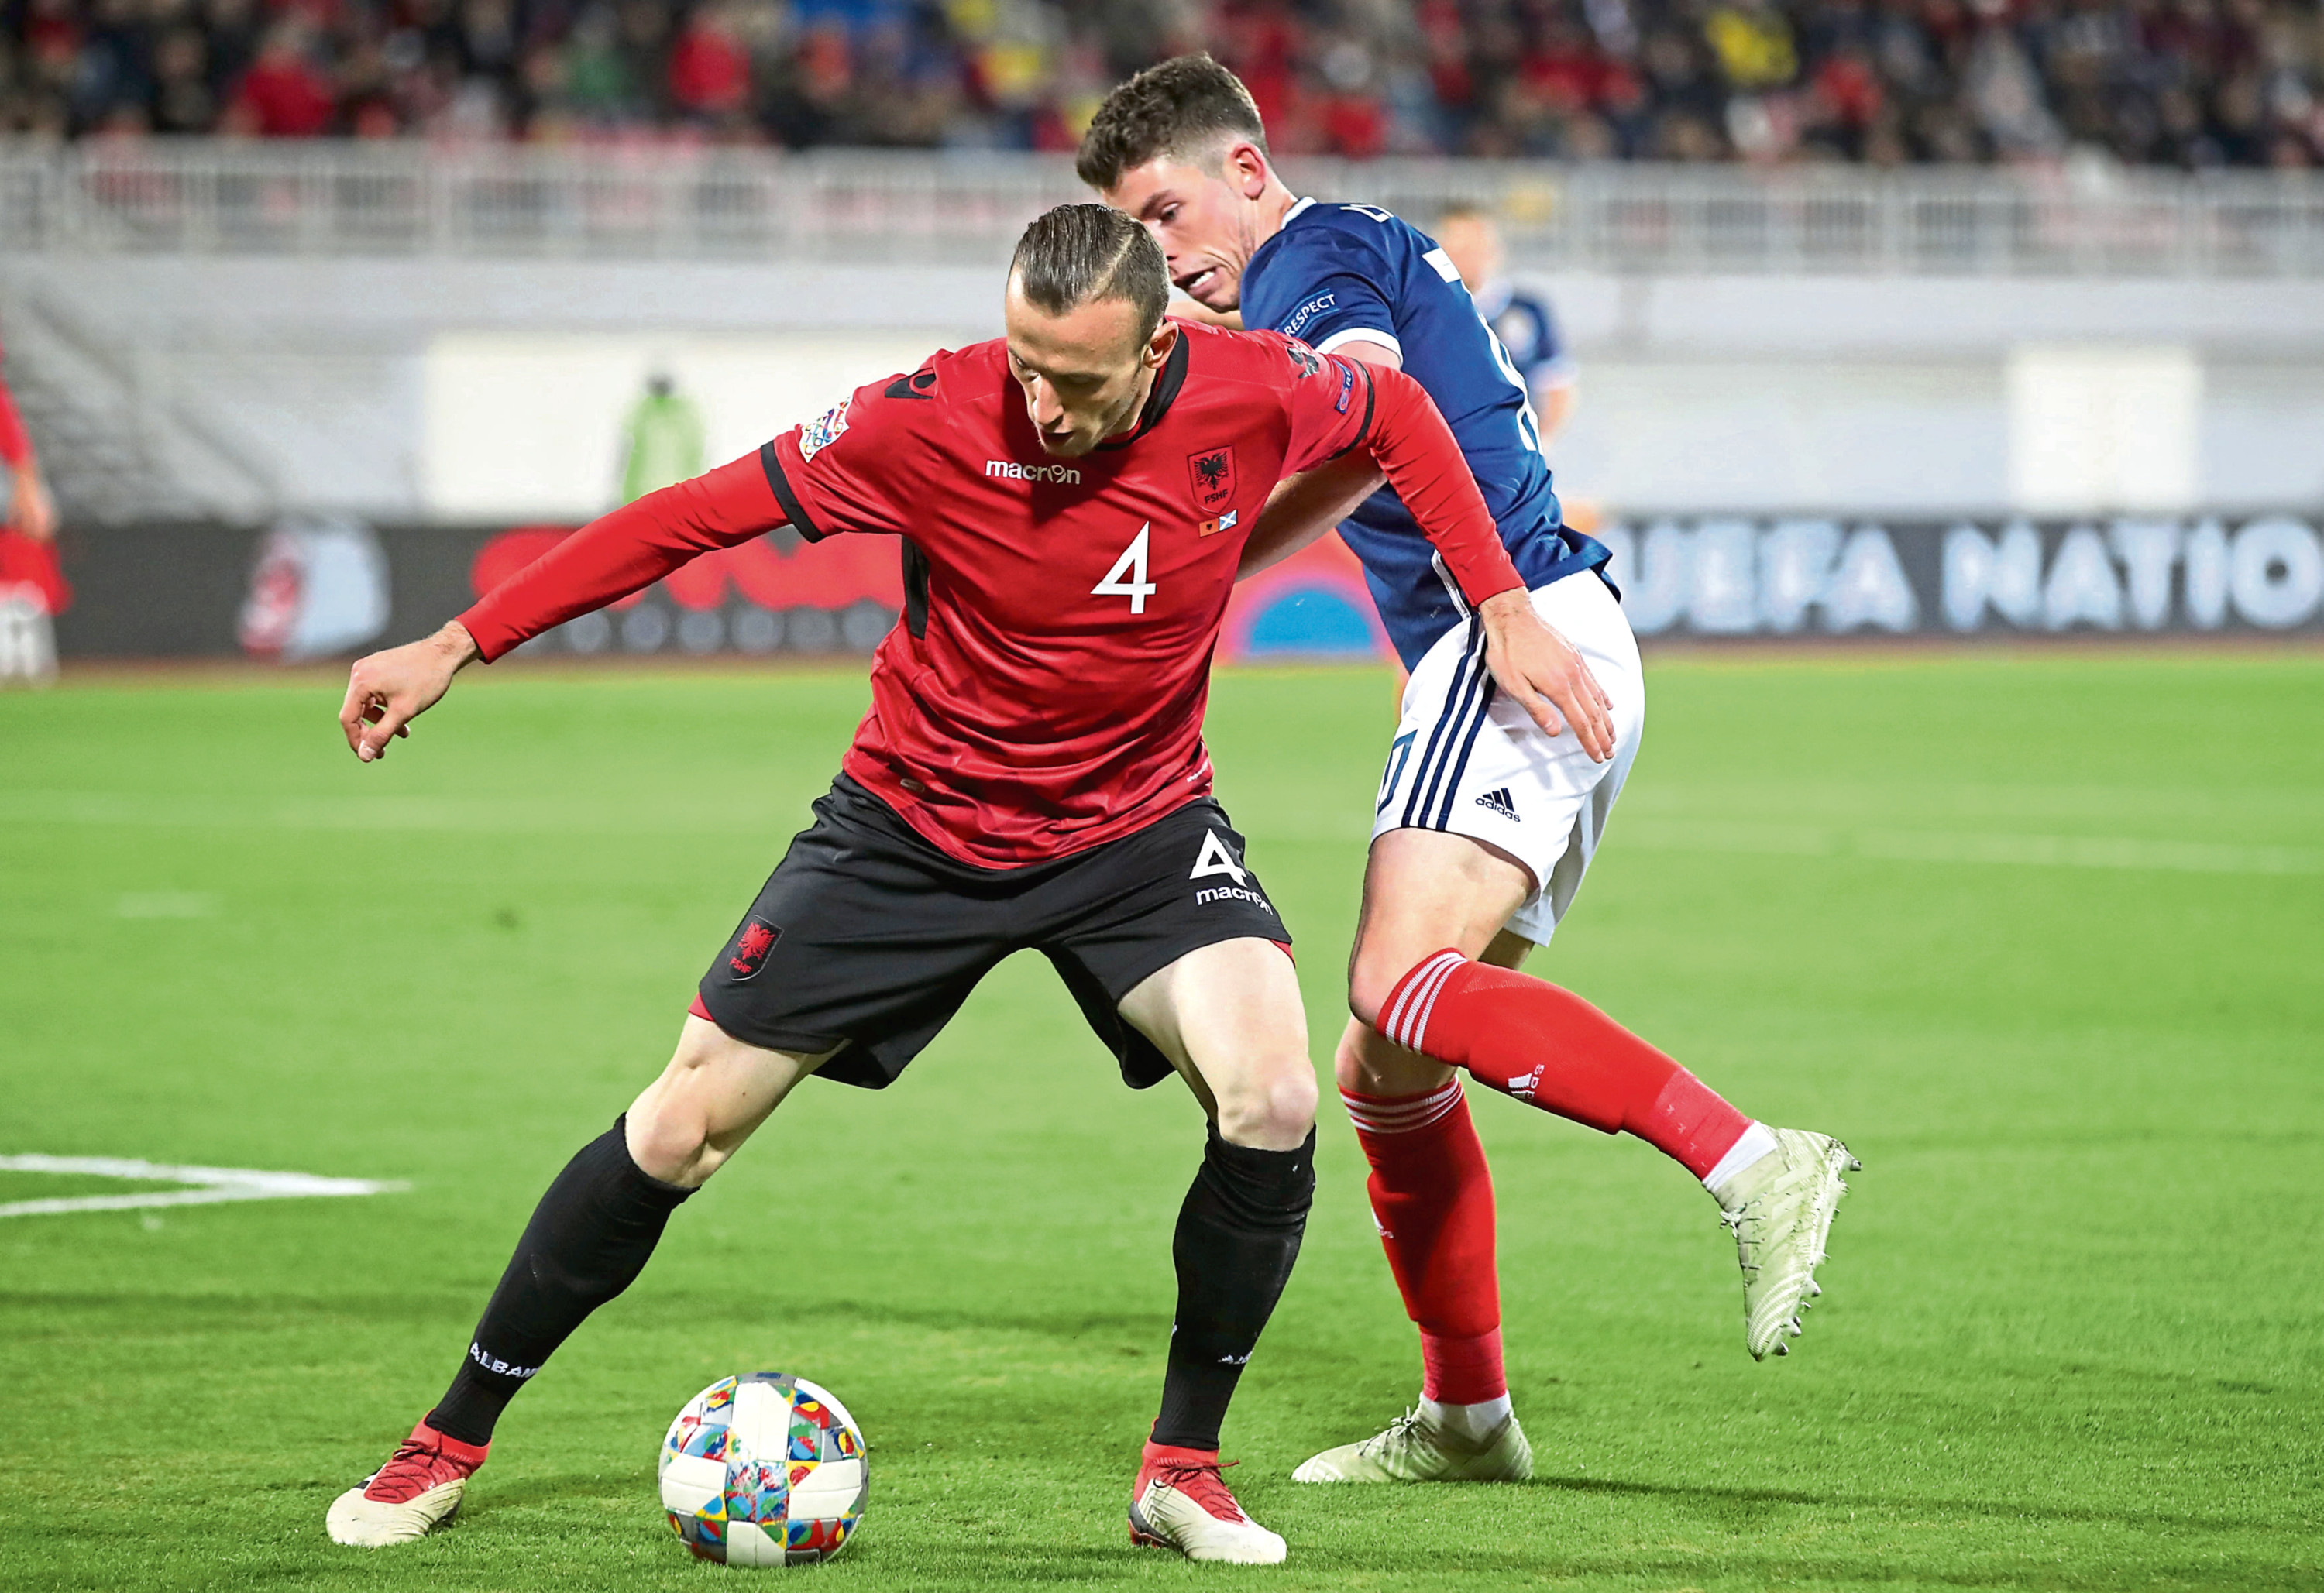 Albania's Adrian Ismaili (left) and Scotland's Ryan Christie battle for the ball during the UEFA Nations League game in Shkoder.